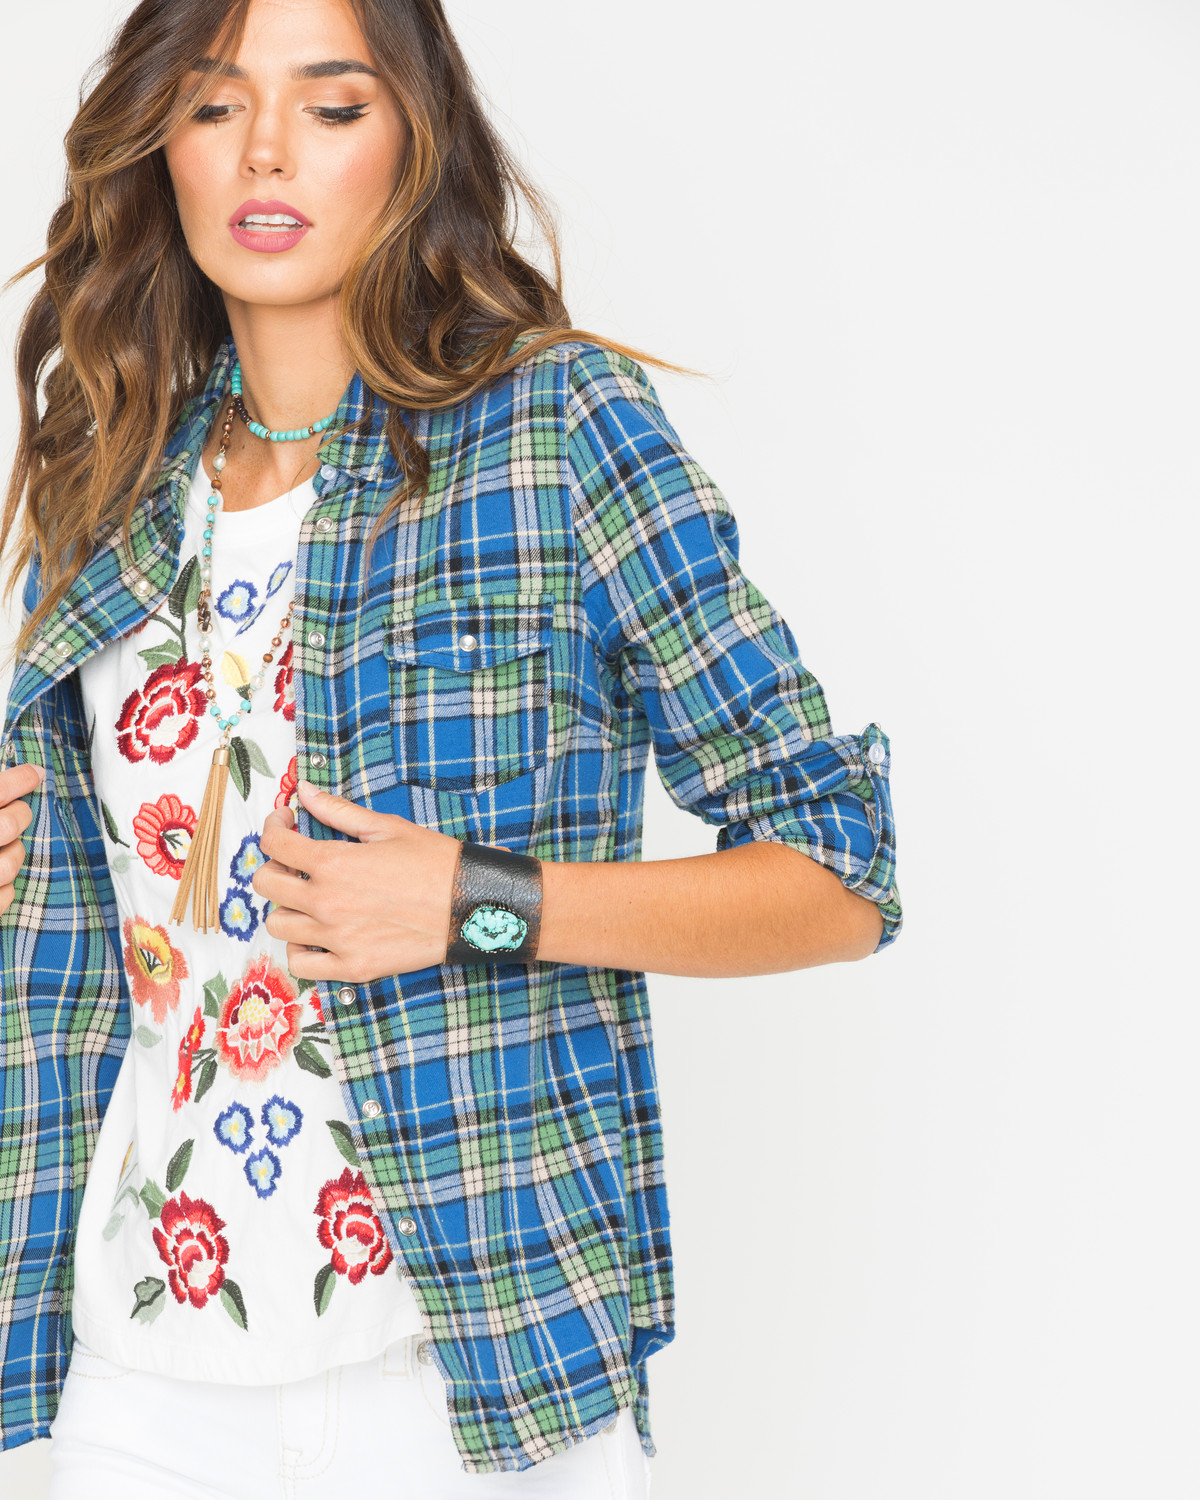 Bohemian cowgirl women 39 s blue rainbow skull flannel shirt for Girl in flannel shirt